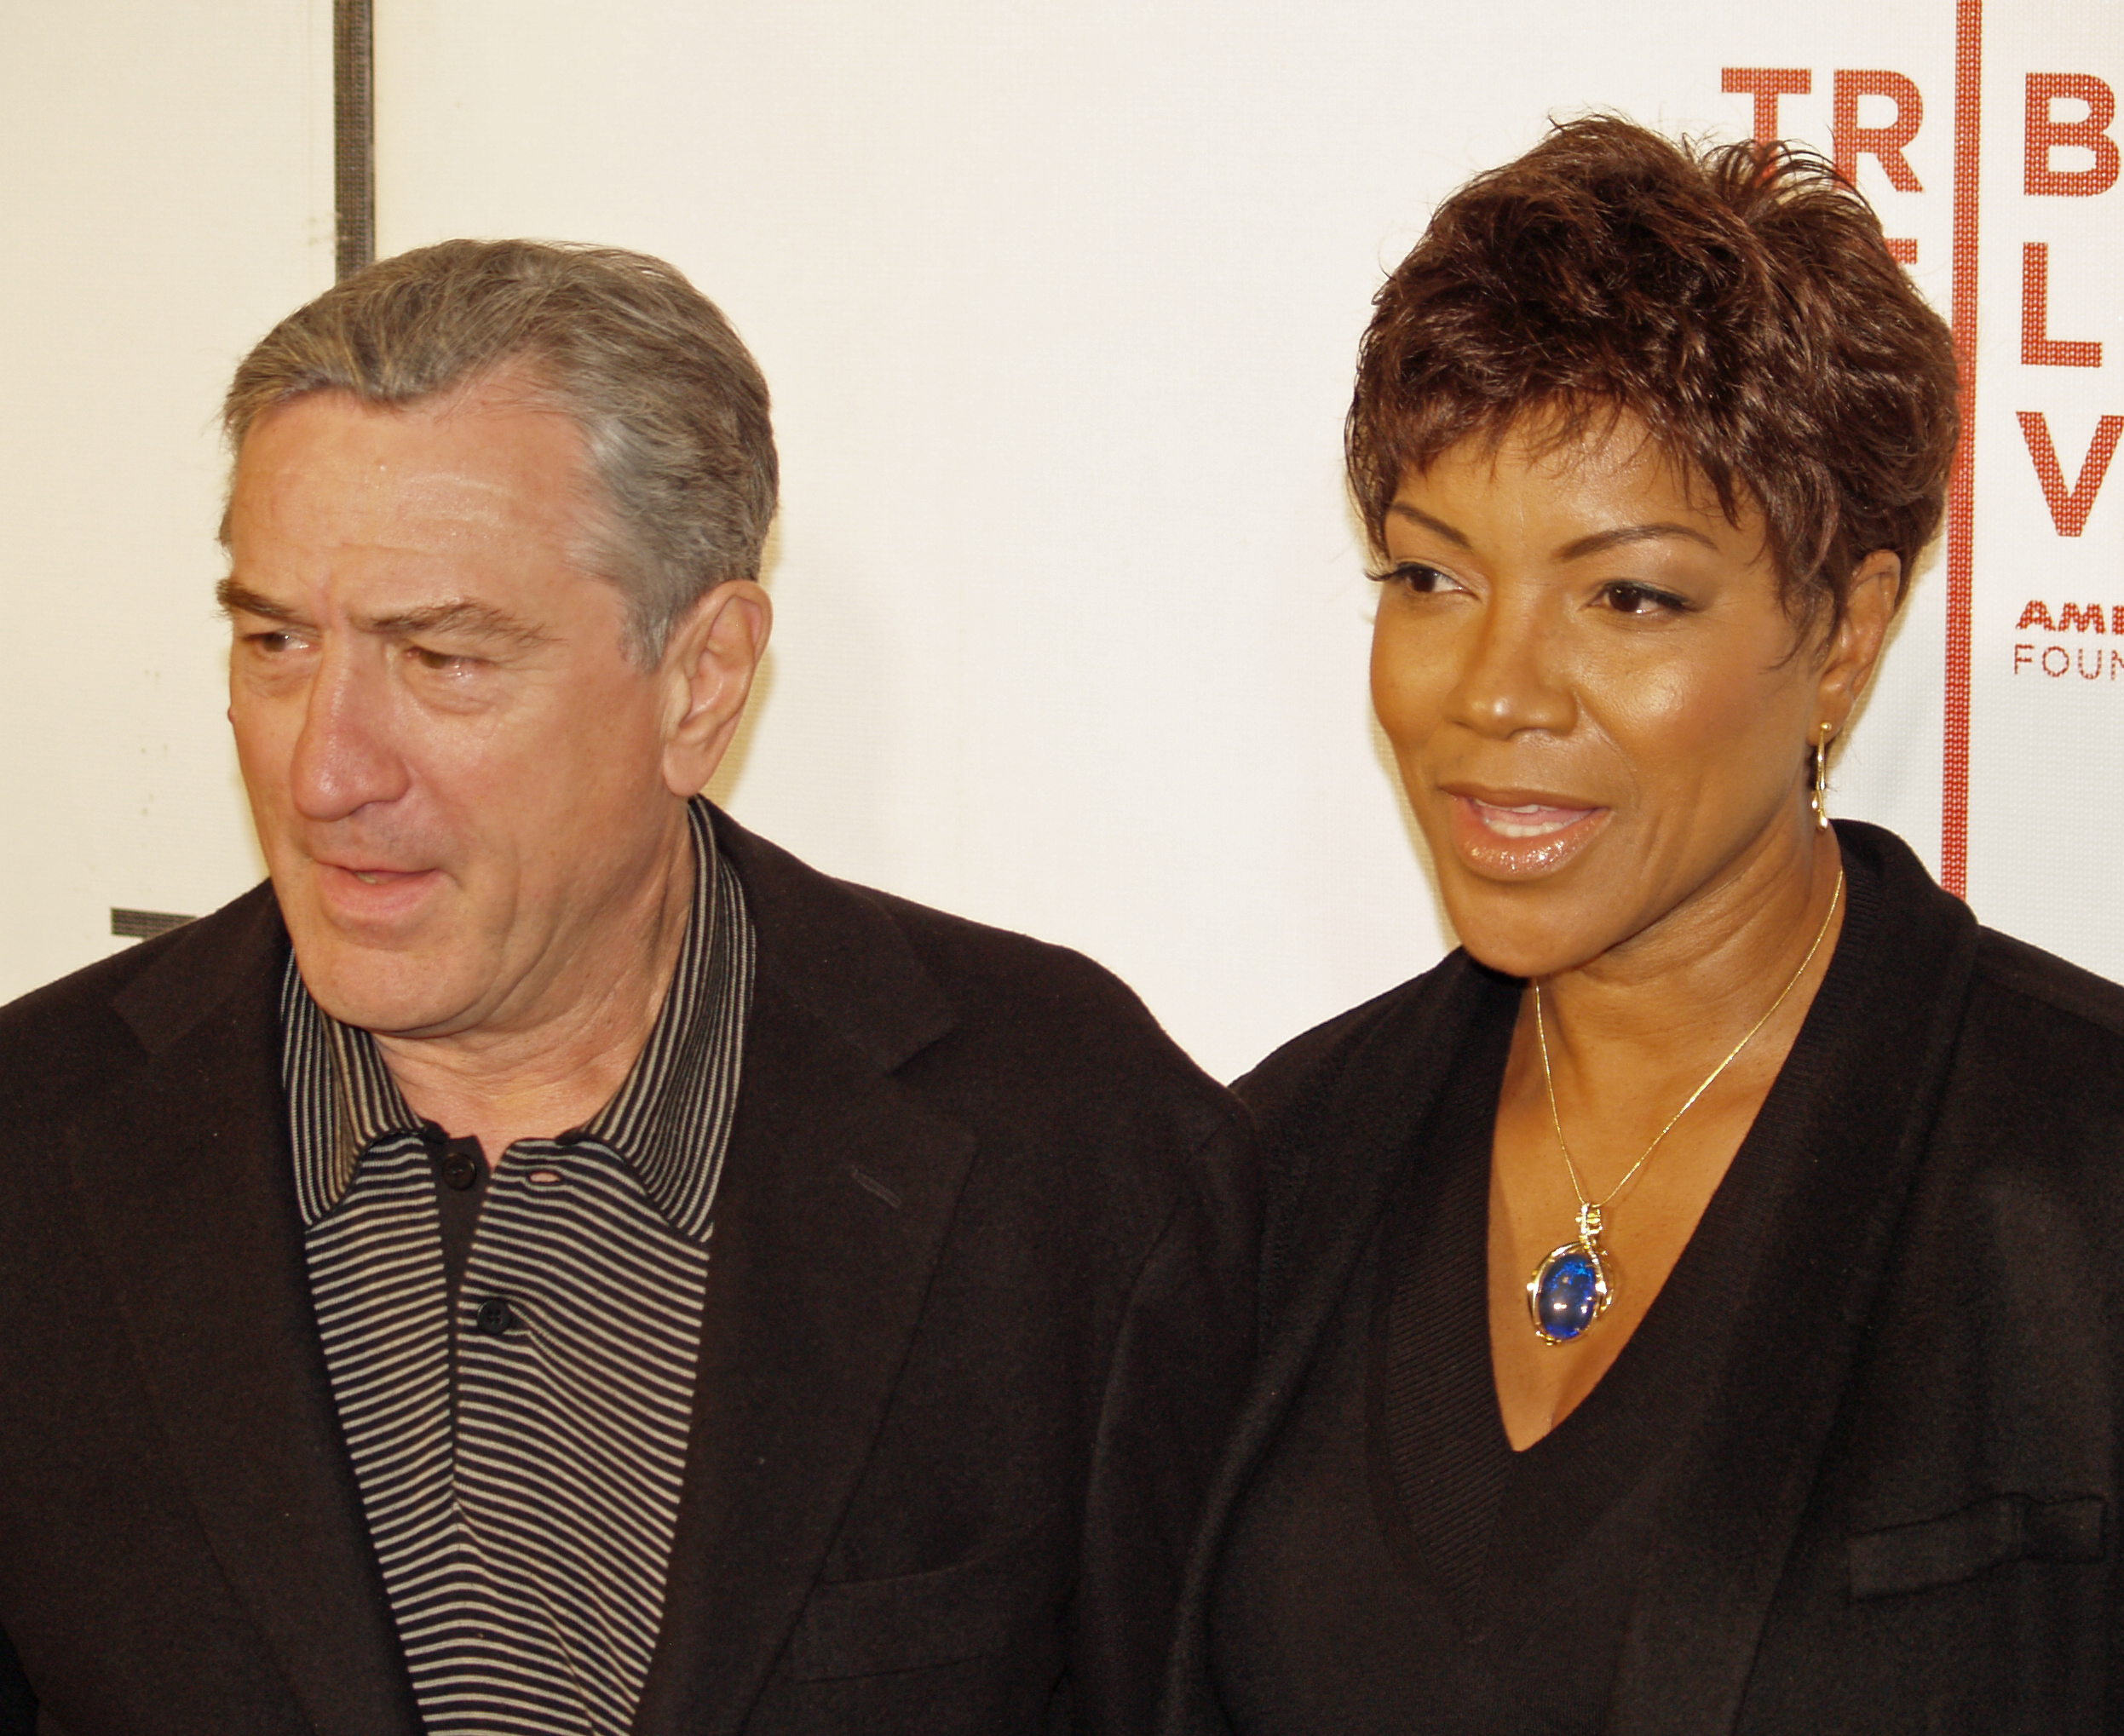 grace hightower elliot de nirograce hightower and robert de niro, grace hightower cafe, grace hightower rwanda, grace hightower business, grace hightower 1987, grace hightower instagram, grace hightower photos, grace hightower de niro, grace hightower young, grace hightower net worth, grace hightower height, grace hightower coffee, grace hightower age, grace hightower elliot de niro, grace hightower daughter, grace hightower child, grace hightower images, grace hightower hijos, grace hightower movies, grace hightower robert de niro marriage